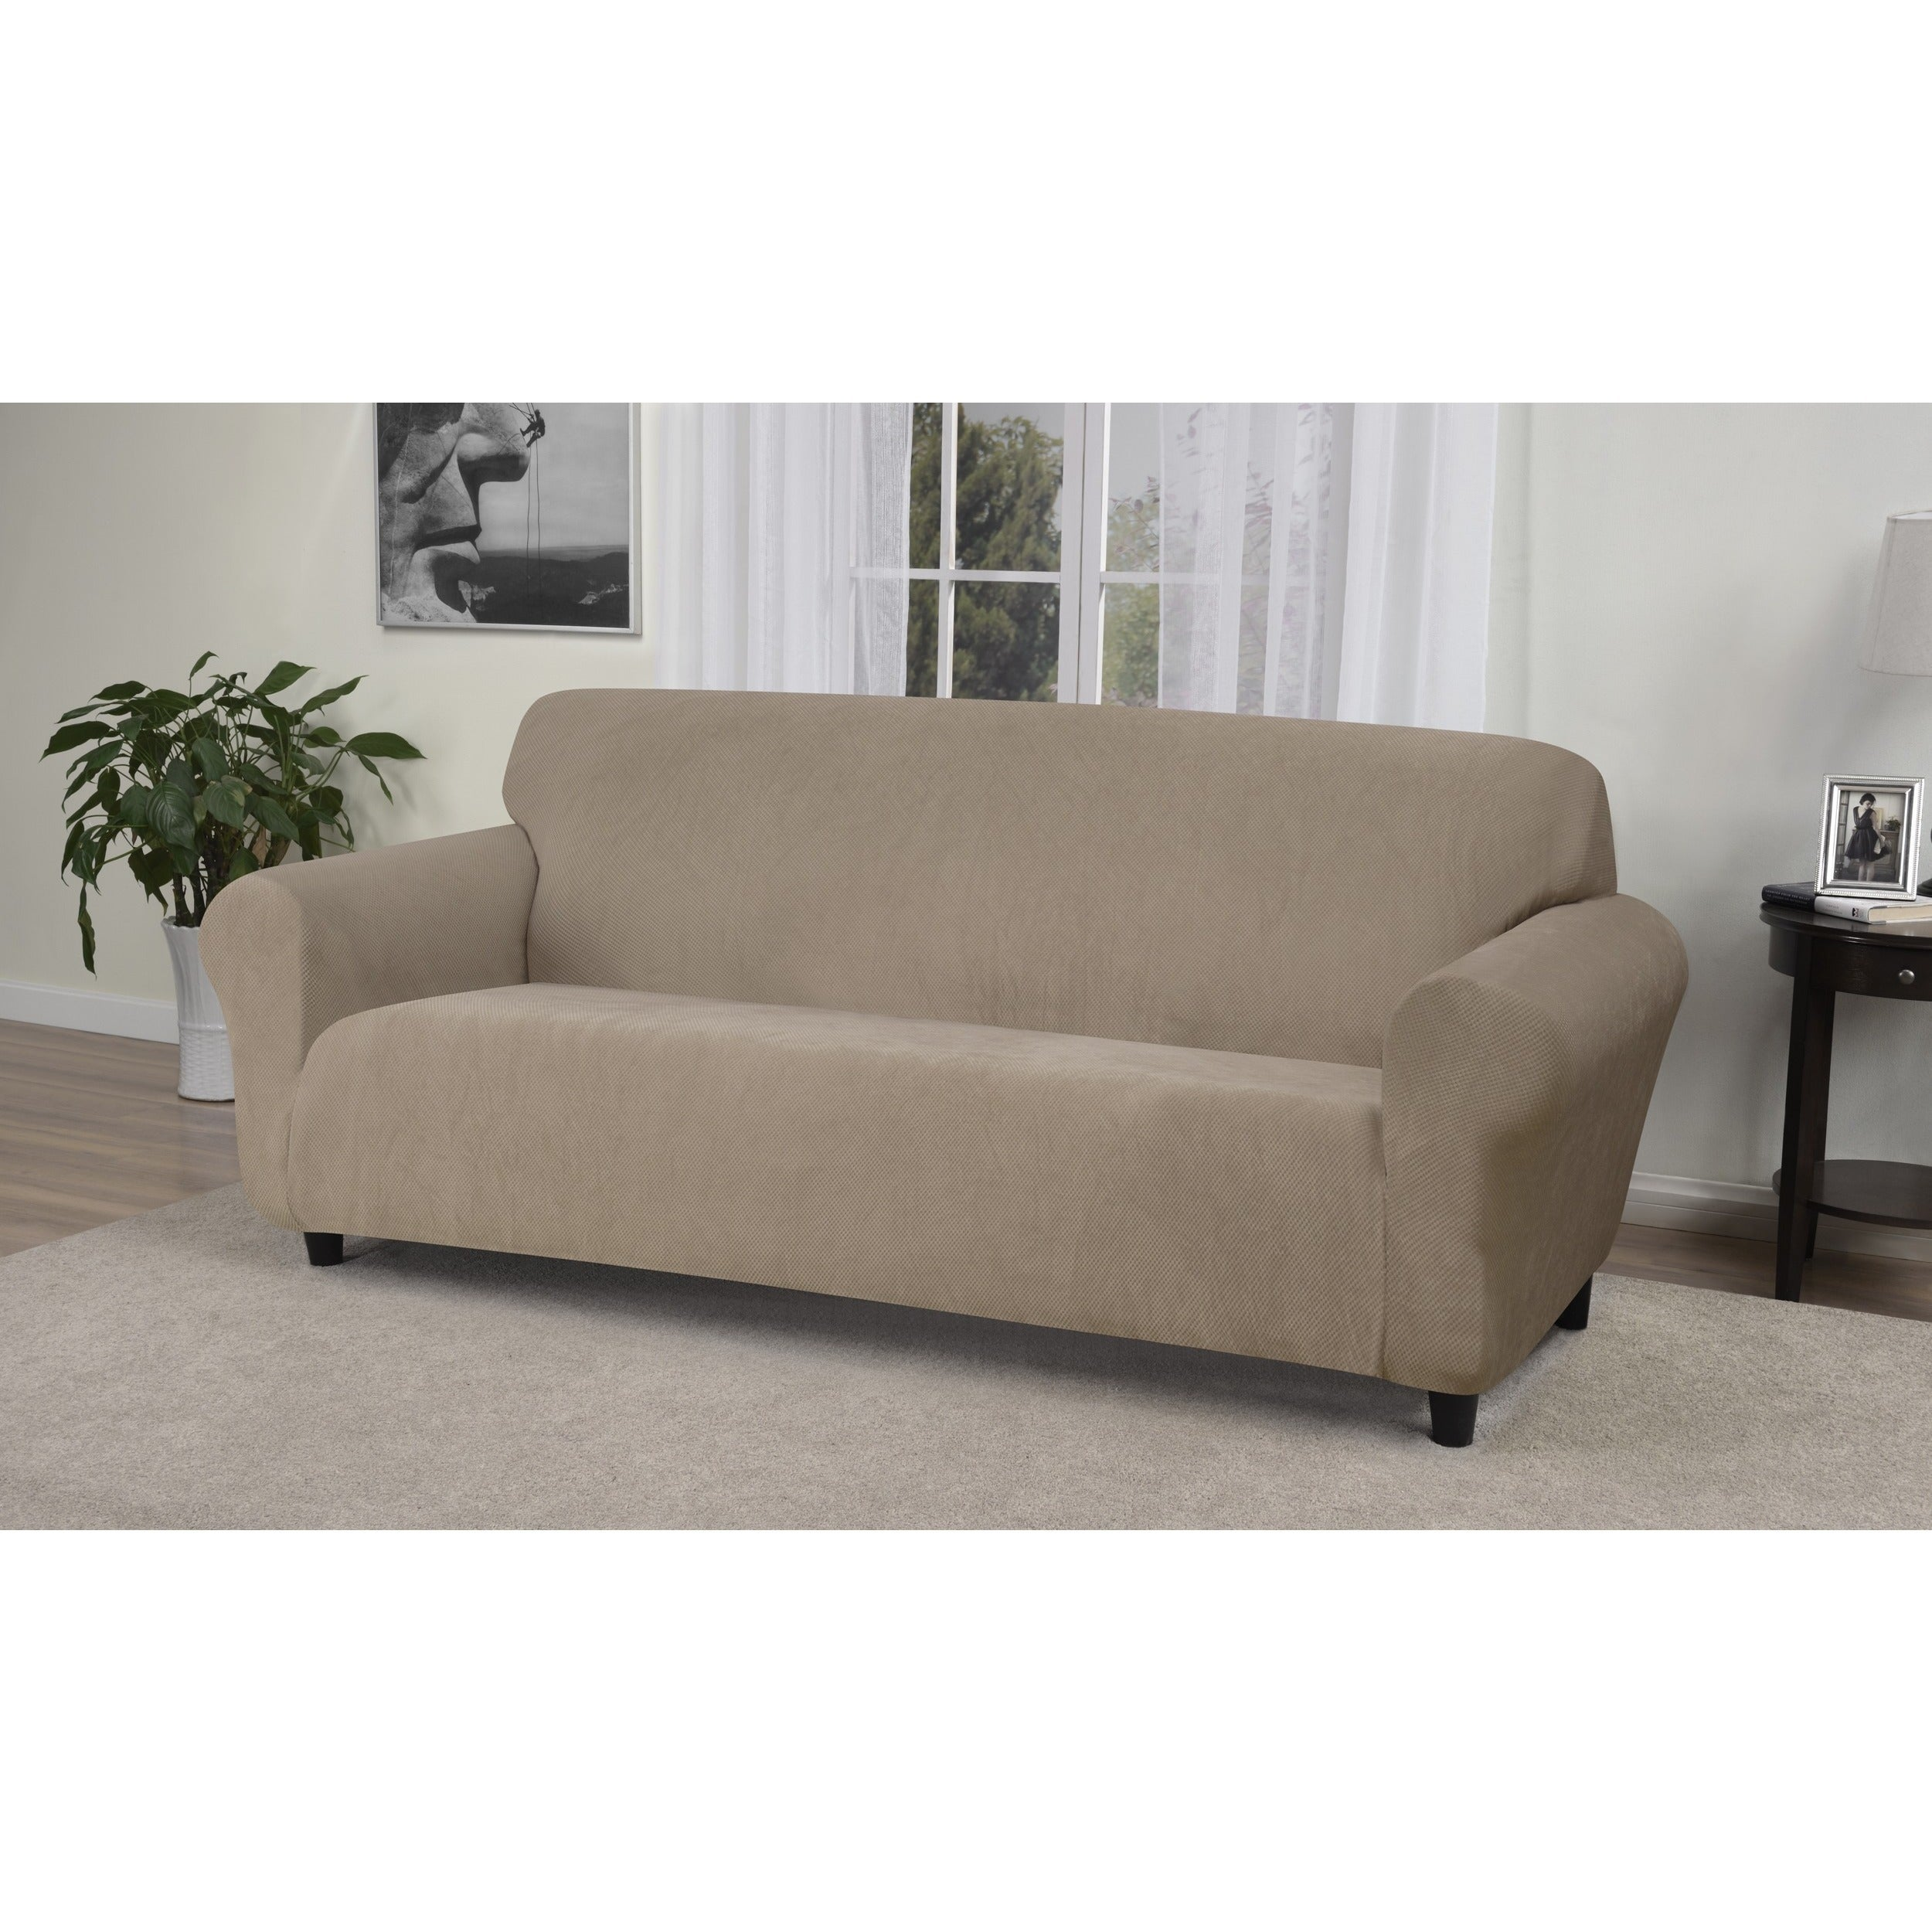 fit weathered amazon saddle com sofa sure kitchen stretch slipcover dp ultimate leather home